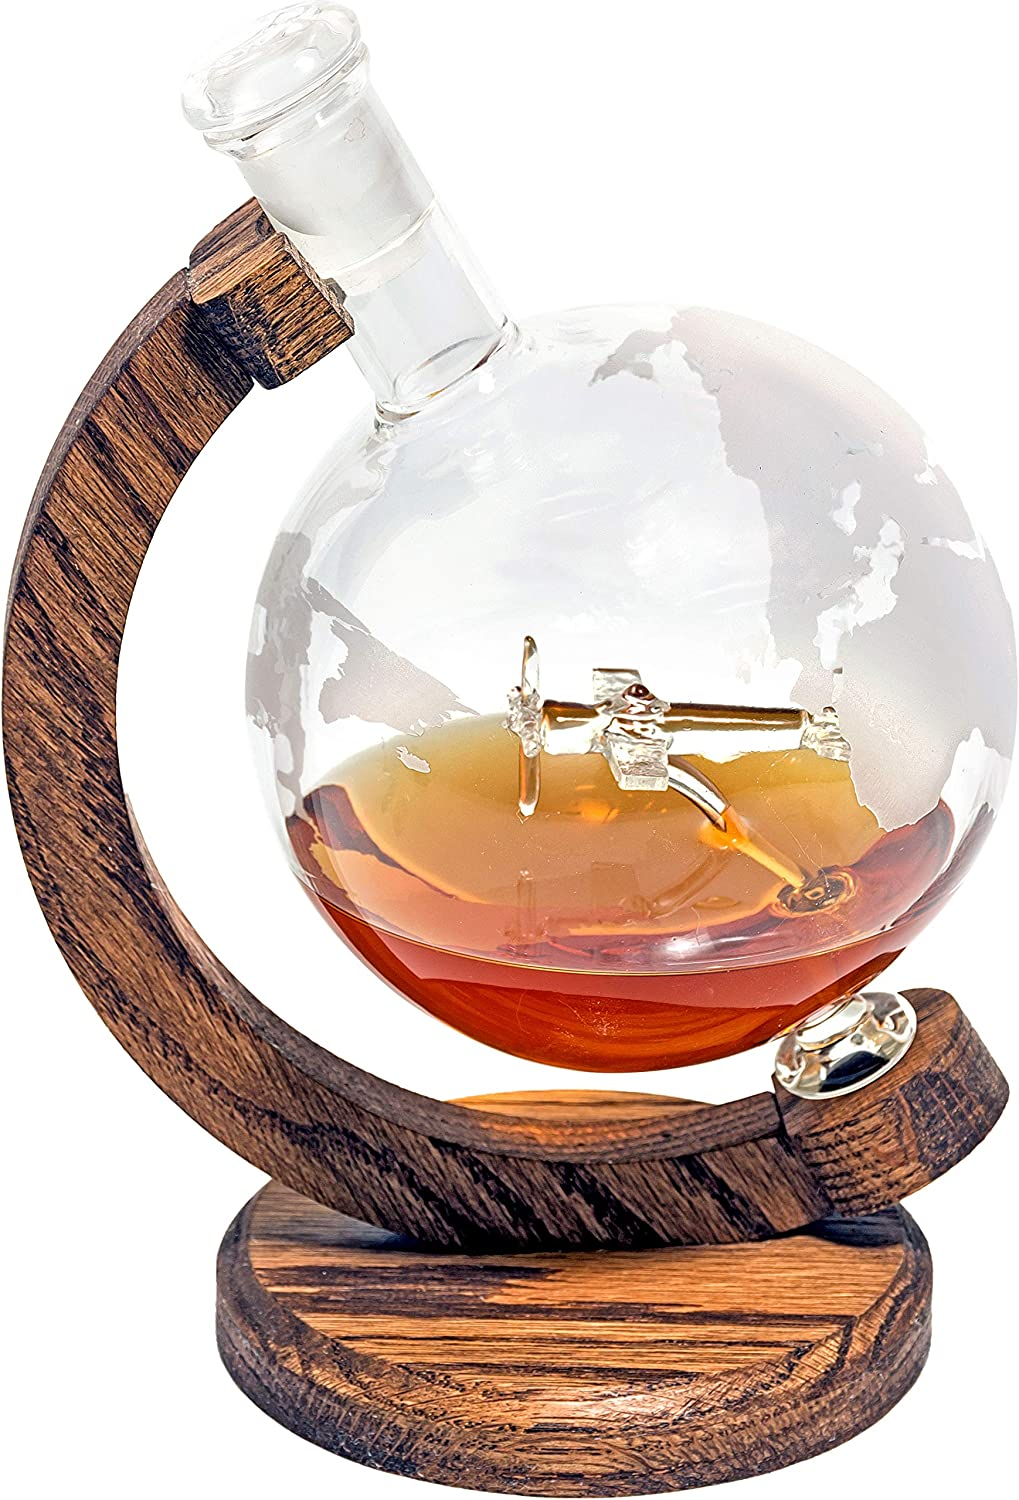 Etched Globe Airplane Liquor Decanter Bourbon Rum P51-D Mustang by Prestige Decanters 1000ml Lead-Free Glass Whiskey Decanter with Plane Inside for Scotch Wine or Liquor 34oz